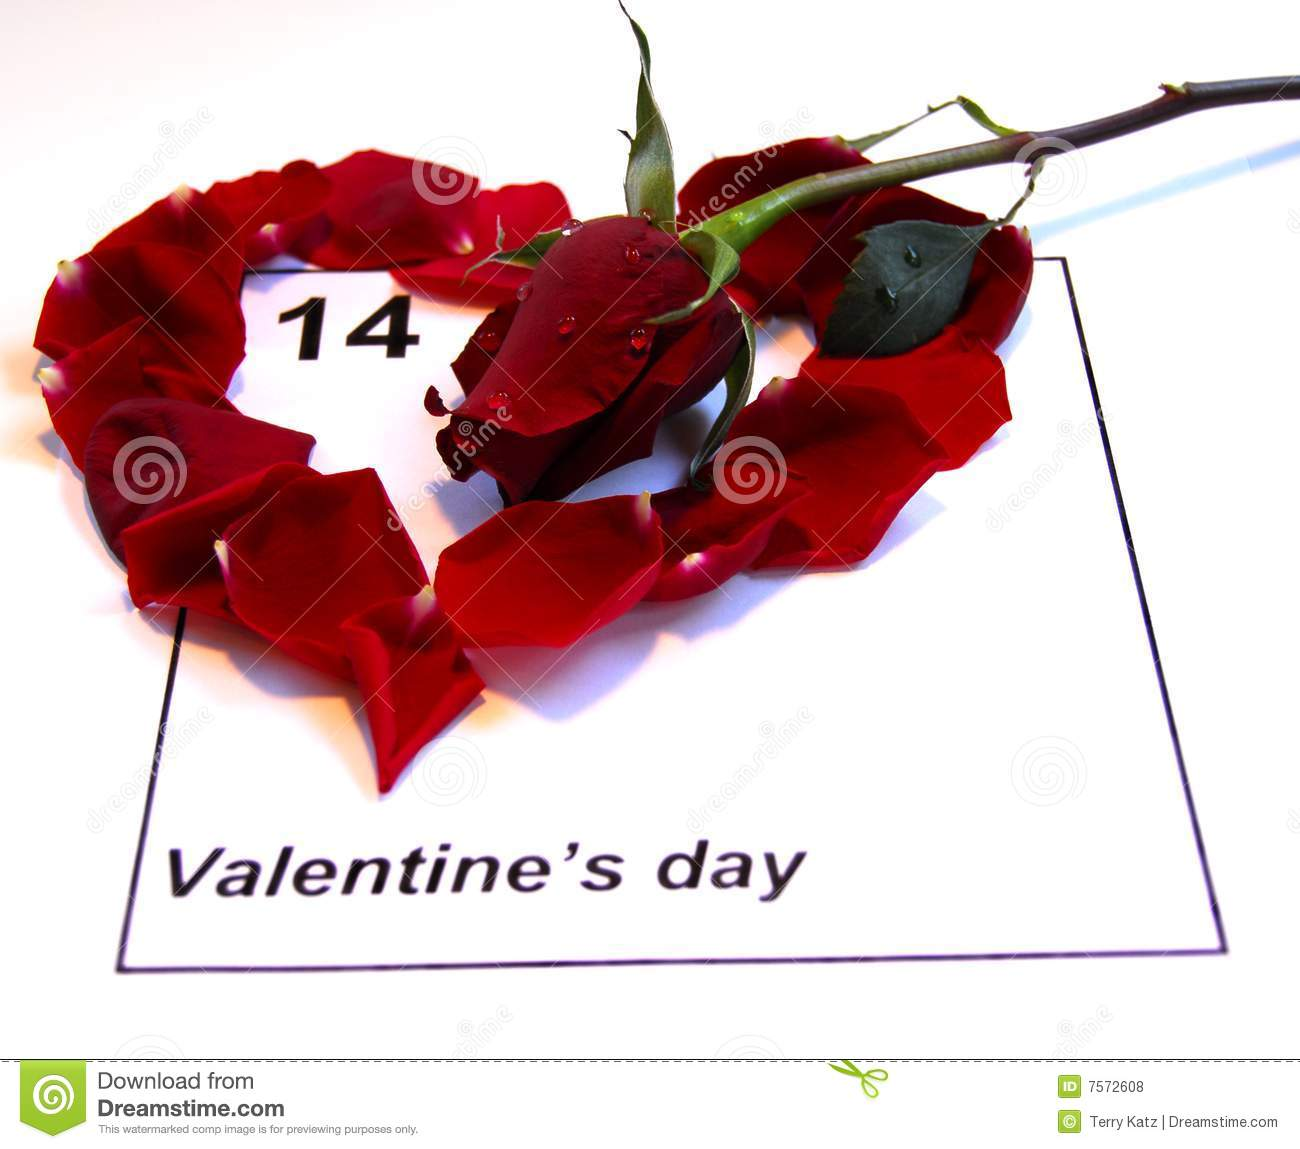 valentines day calendar with single rose stock photo - image: 7572608, Ideas